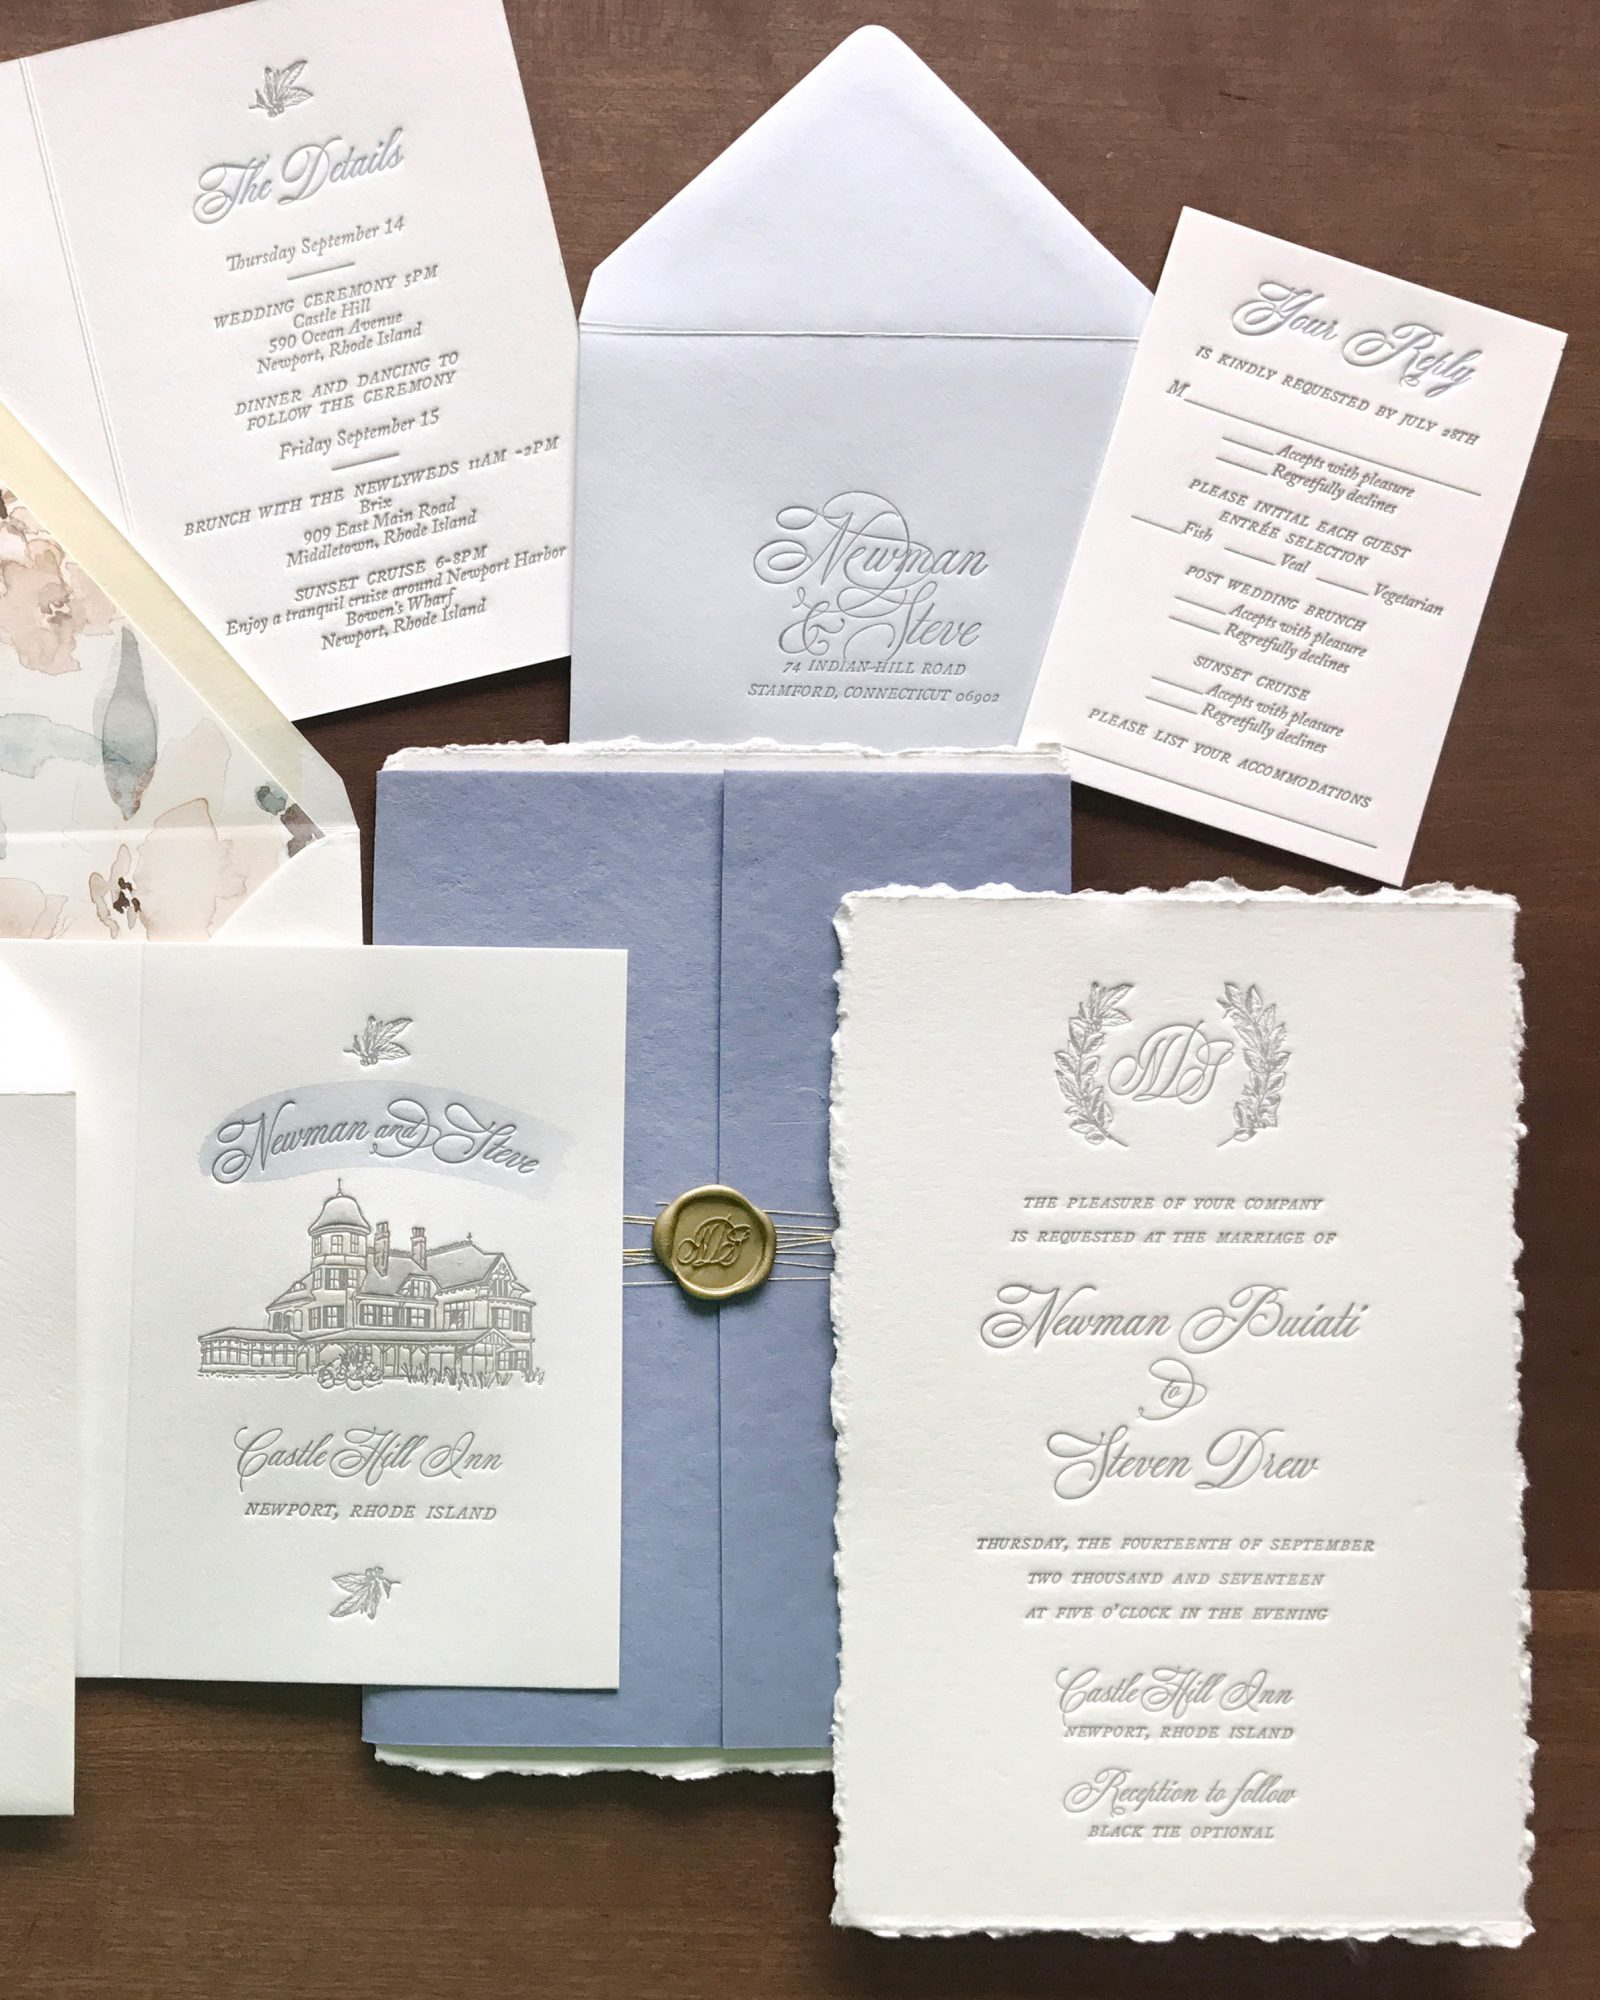 classic invitation letterpress print tied with gold string and wax seal